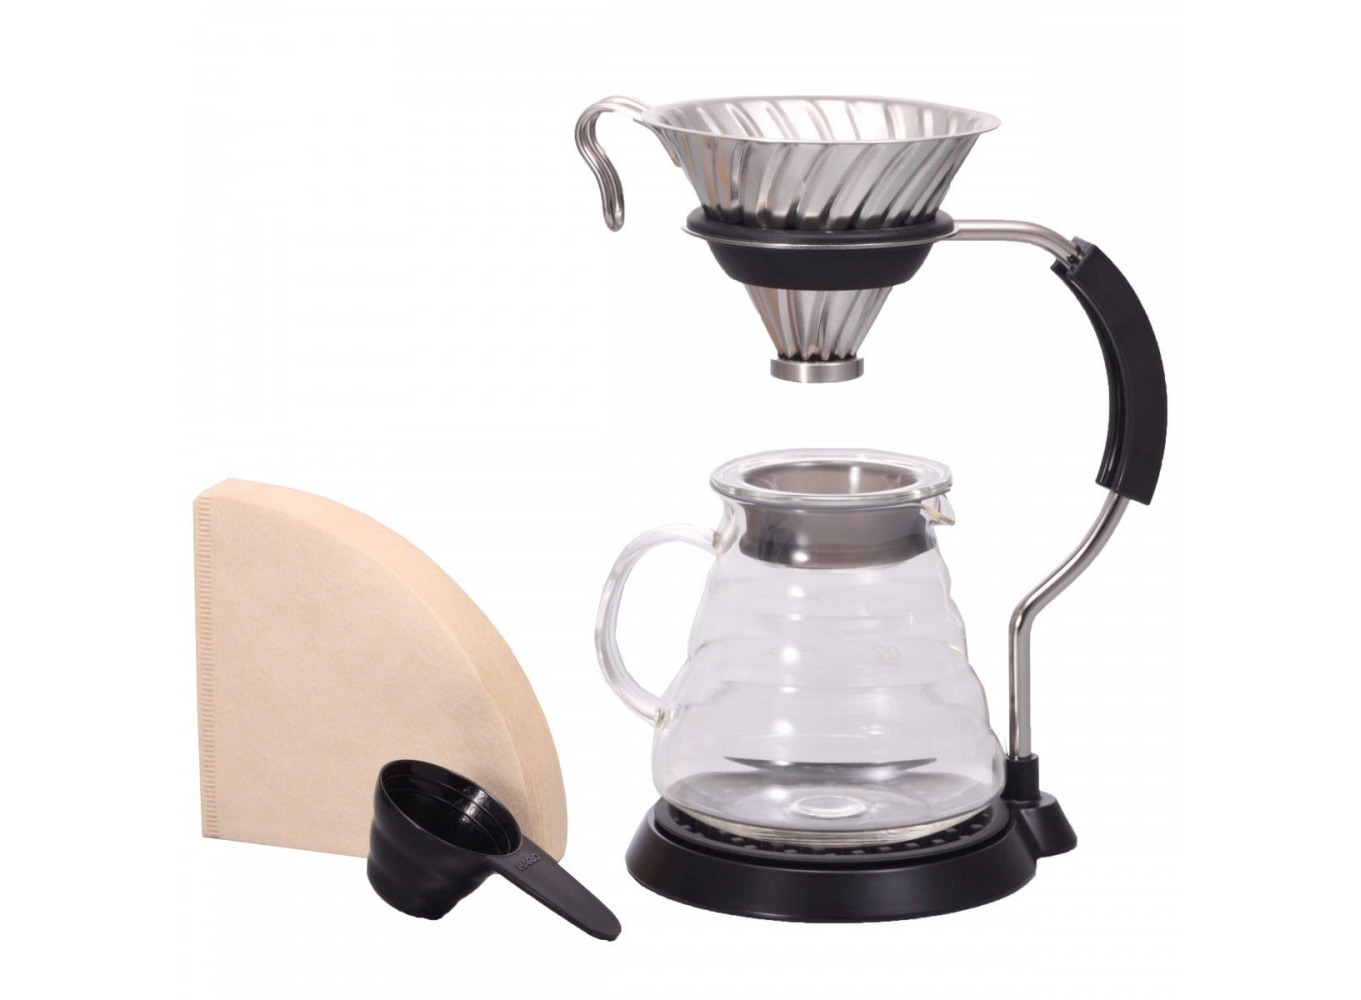 Hario-Coffee-Drip-and-Stand